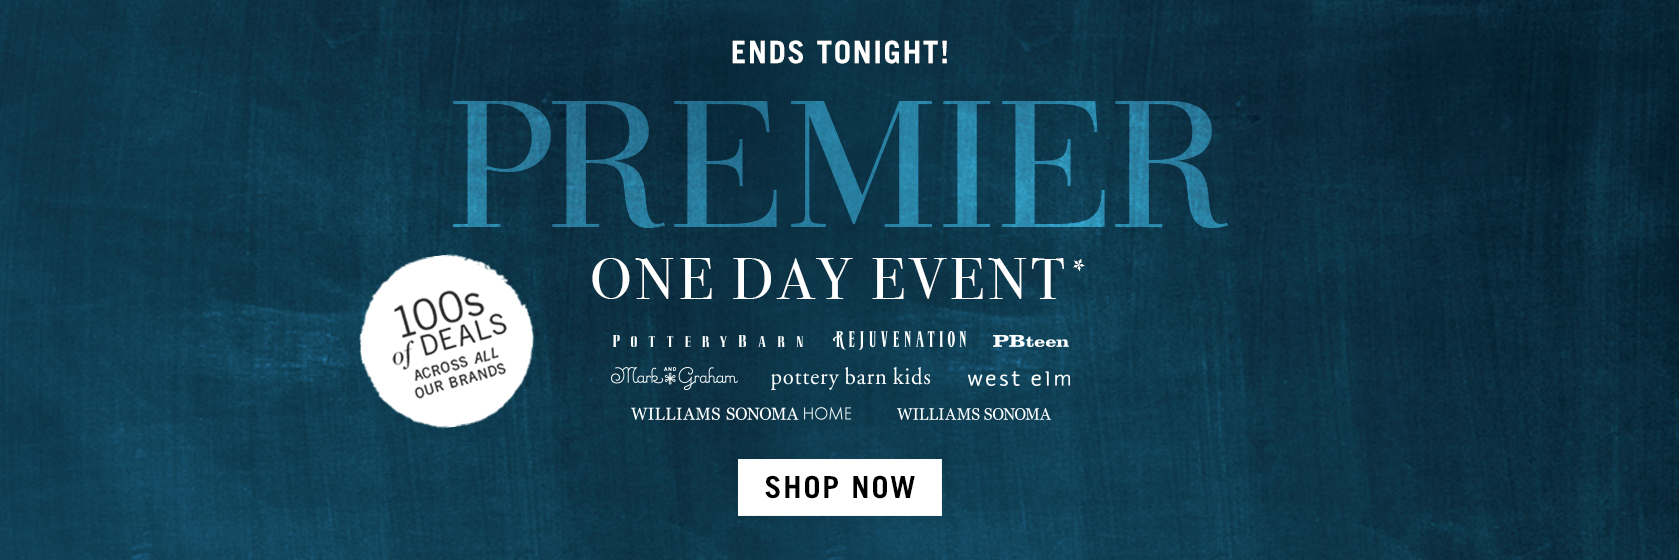 Ends Tonight! One Day Premier Event - 100s Of Deals Across All Our Brands